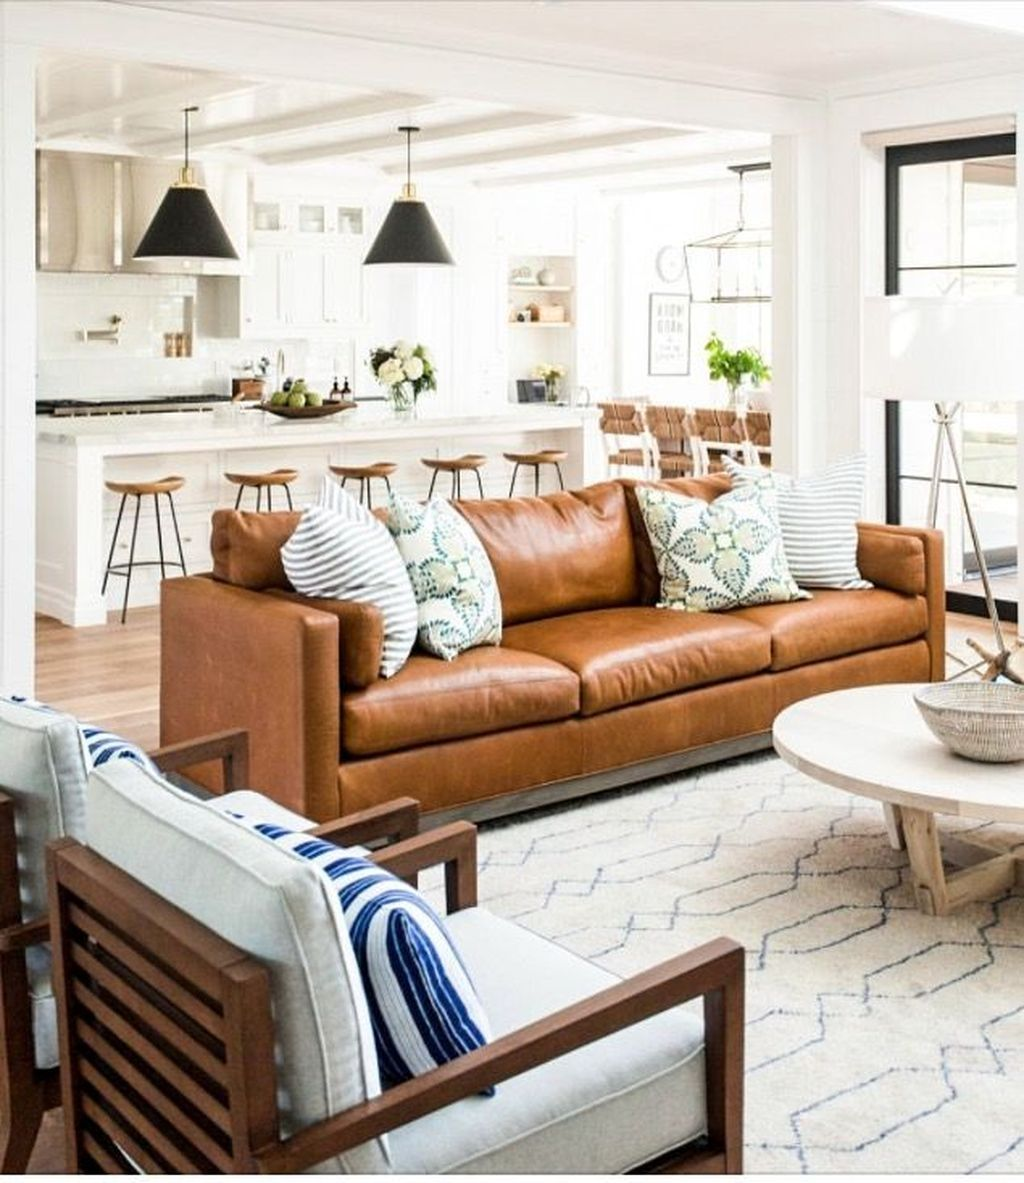 48 Lovely Farmhouse Living Room With Leather Sofa Ideas #modernfarmhouselivingroom